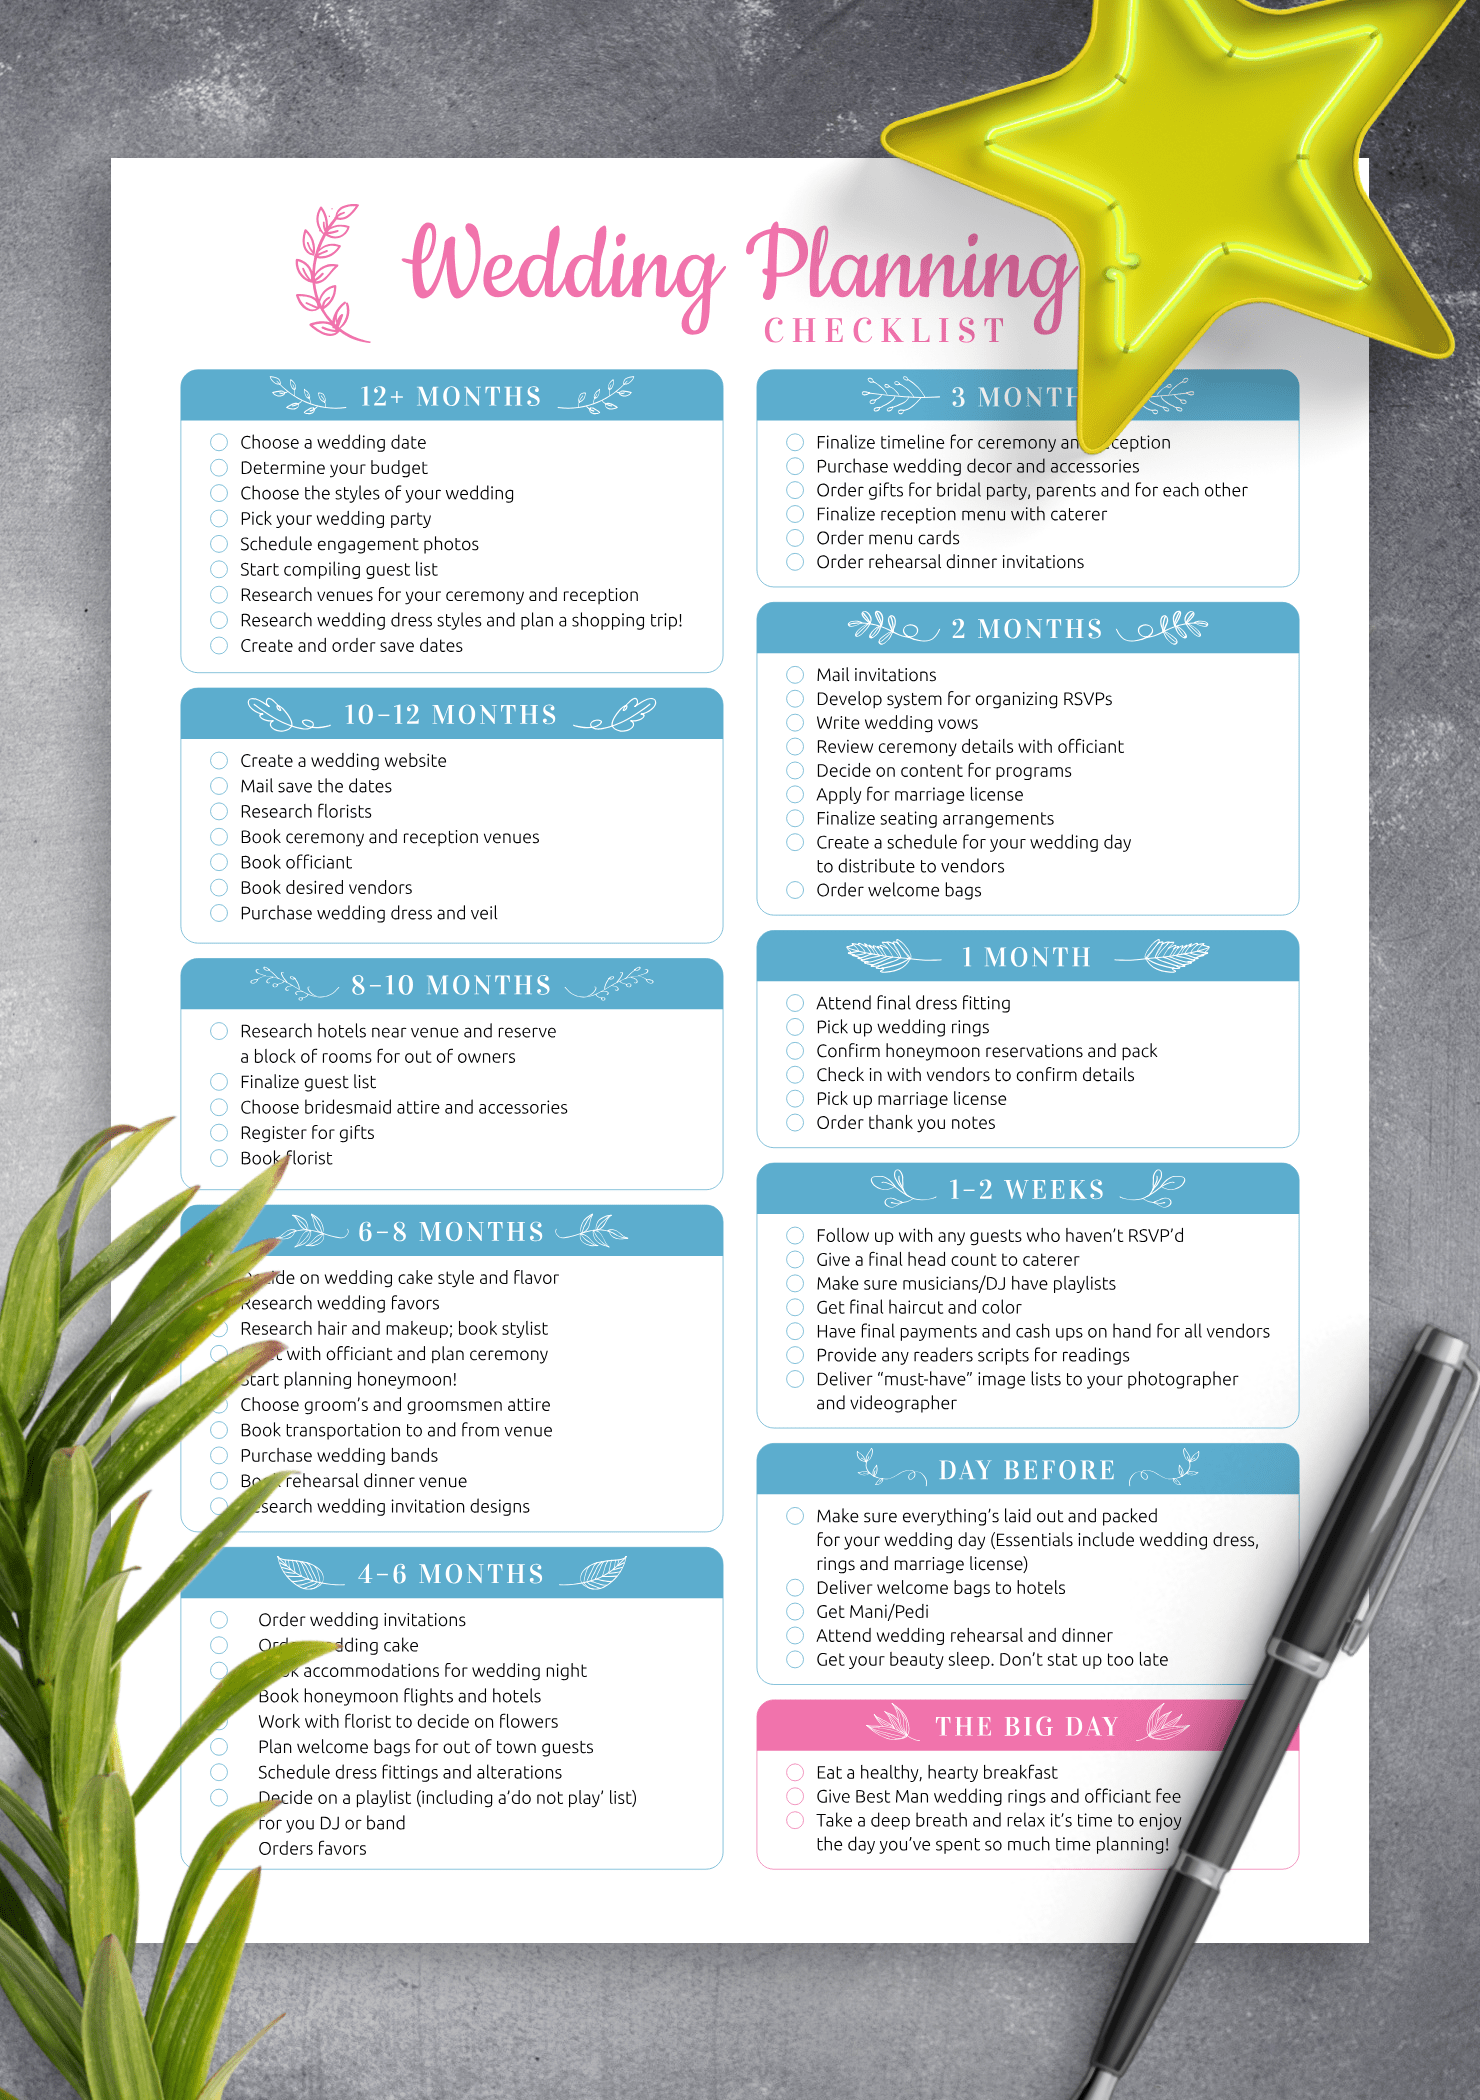 Download Printable Wedding Planning Checklist